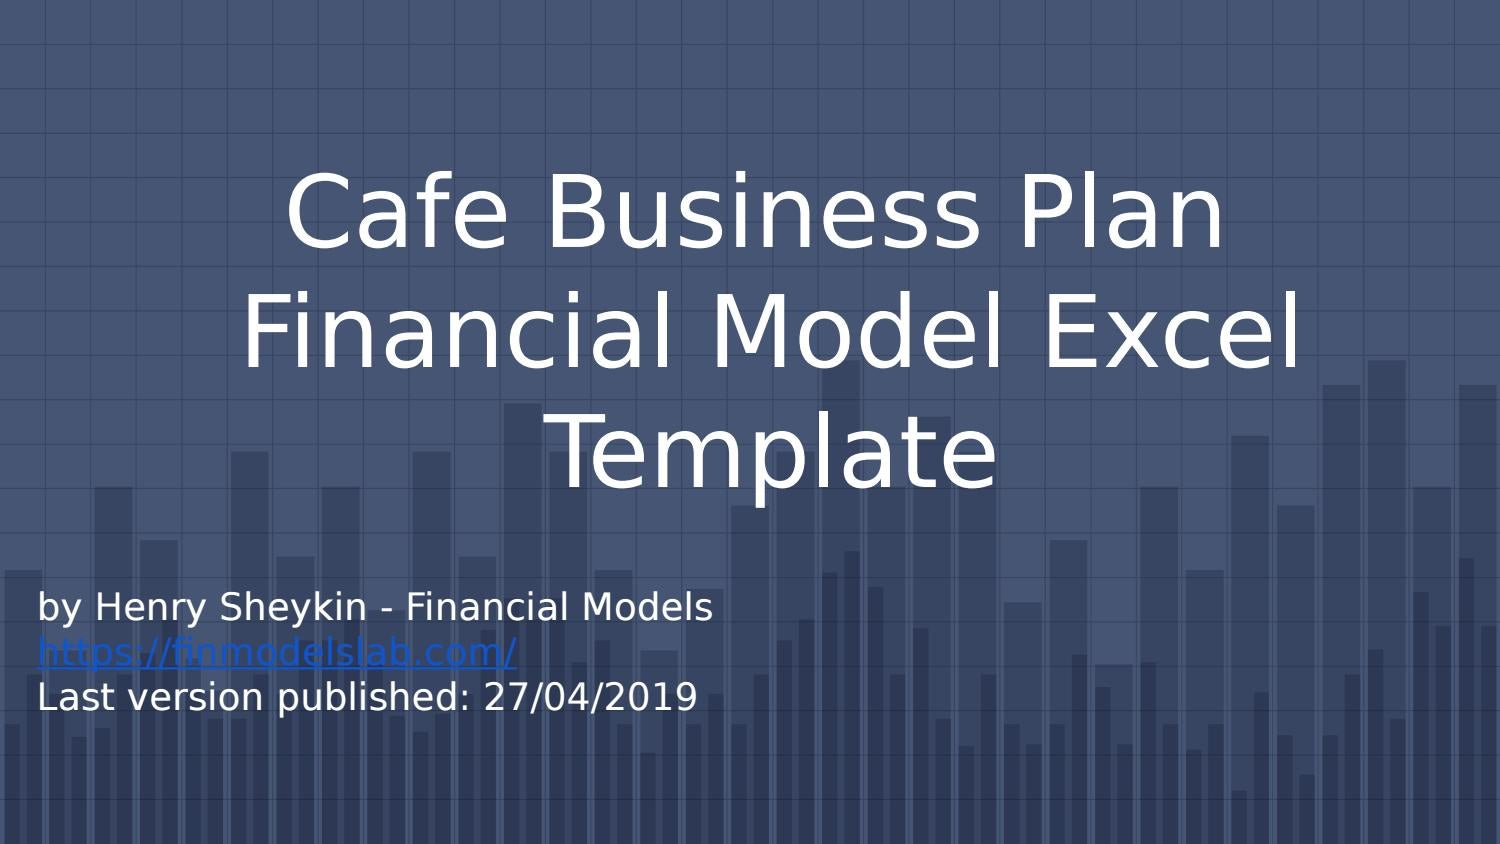 Cafe Business Plan Financial Model Excel Template By